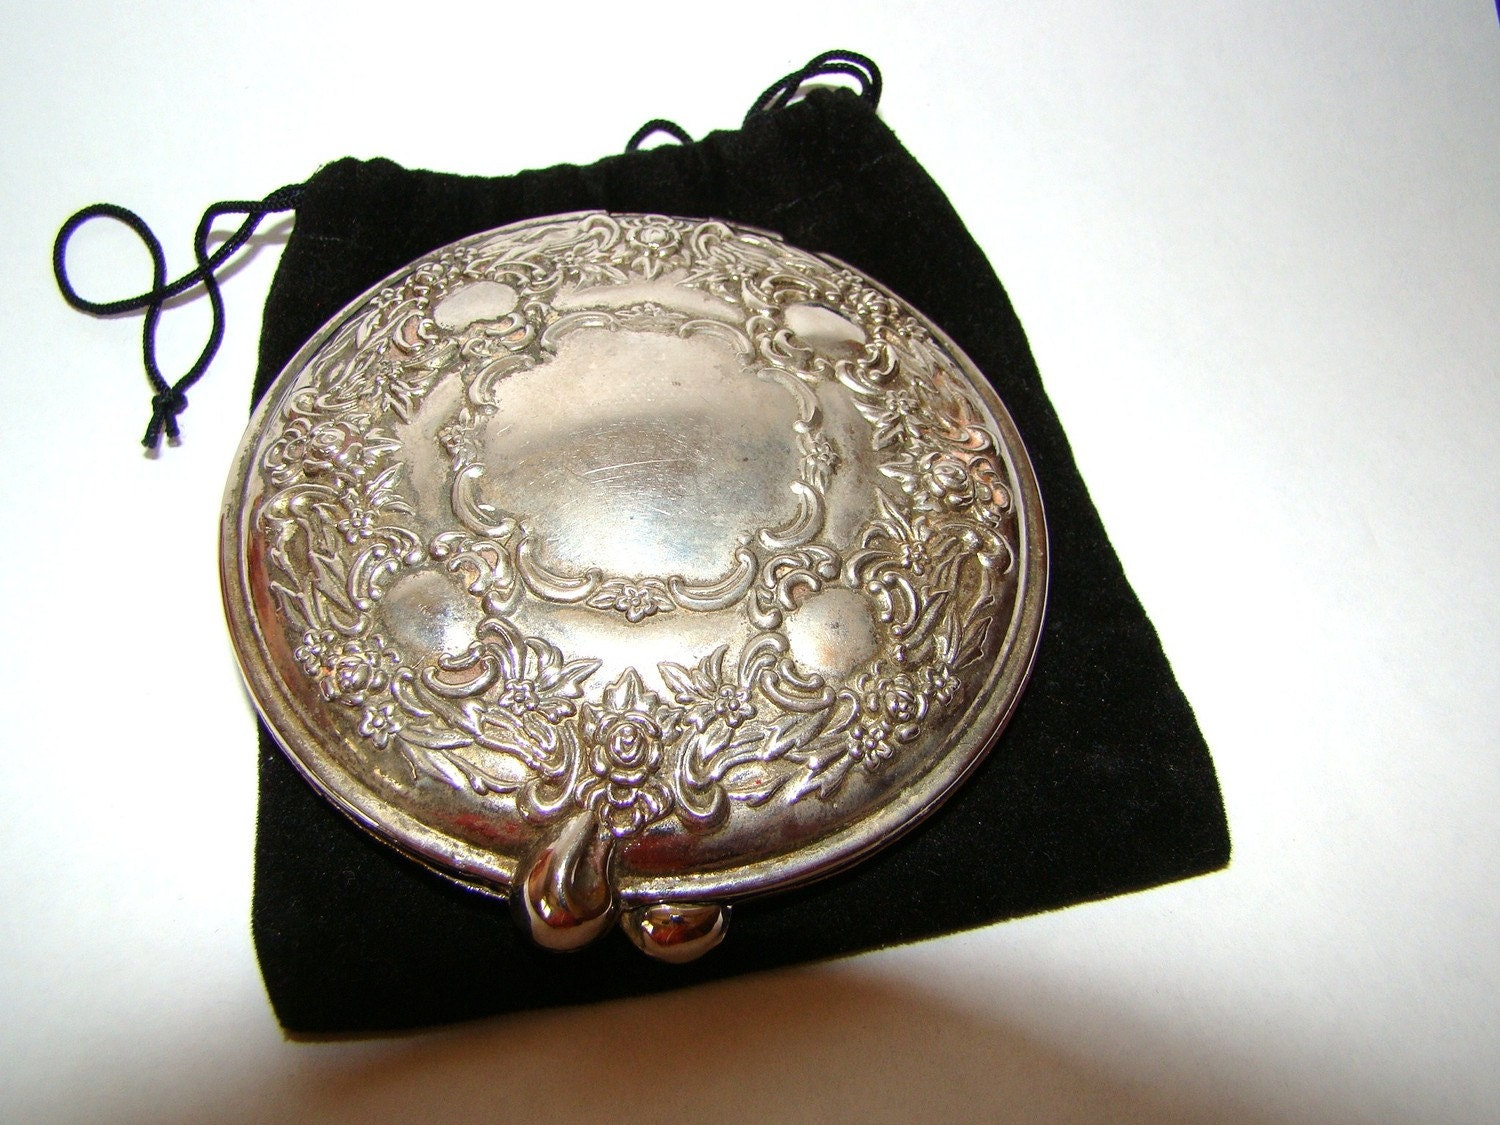 Vintage Antique Silver Plated Powder Mirror Compact With Black